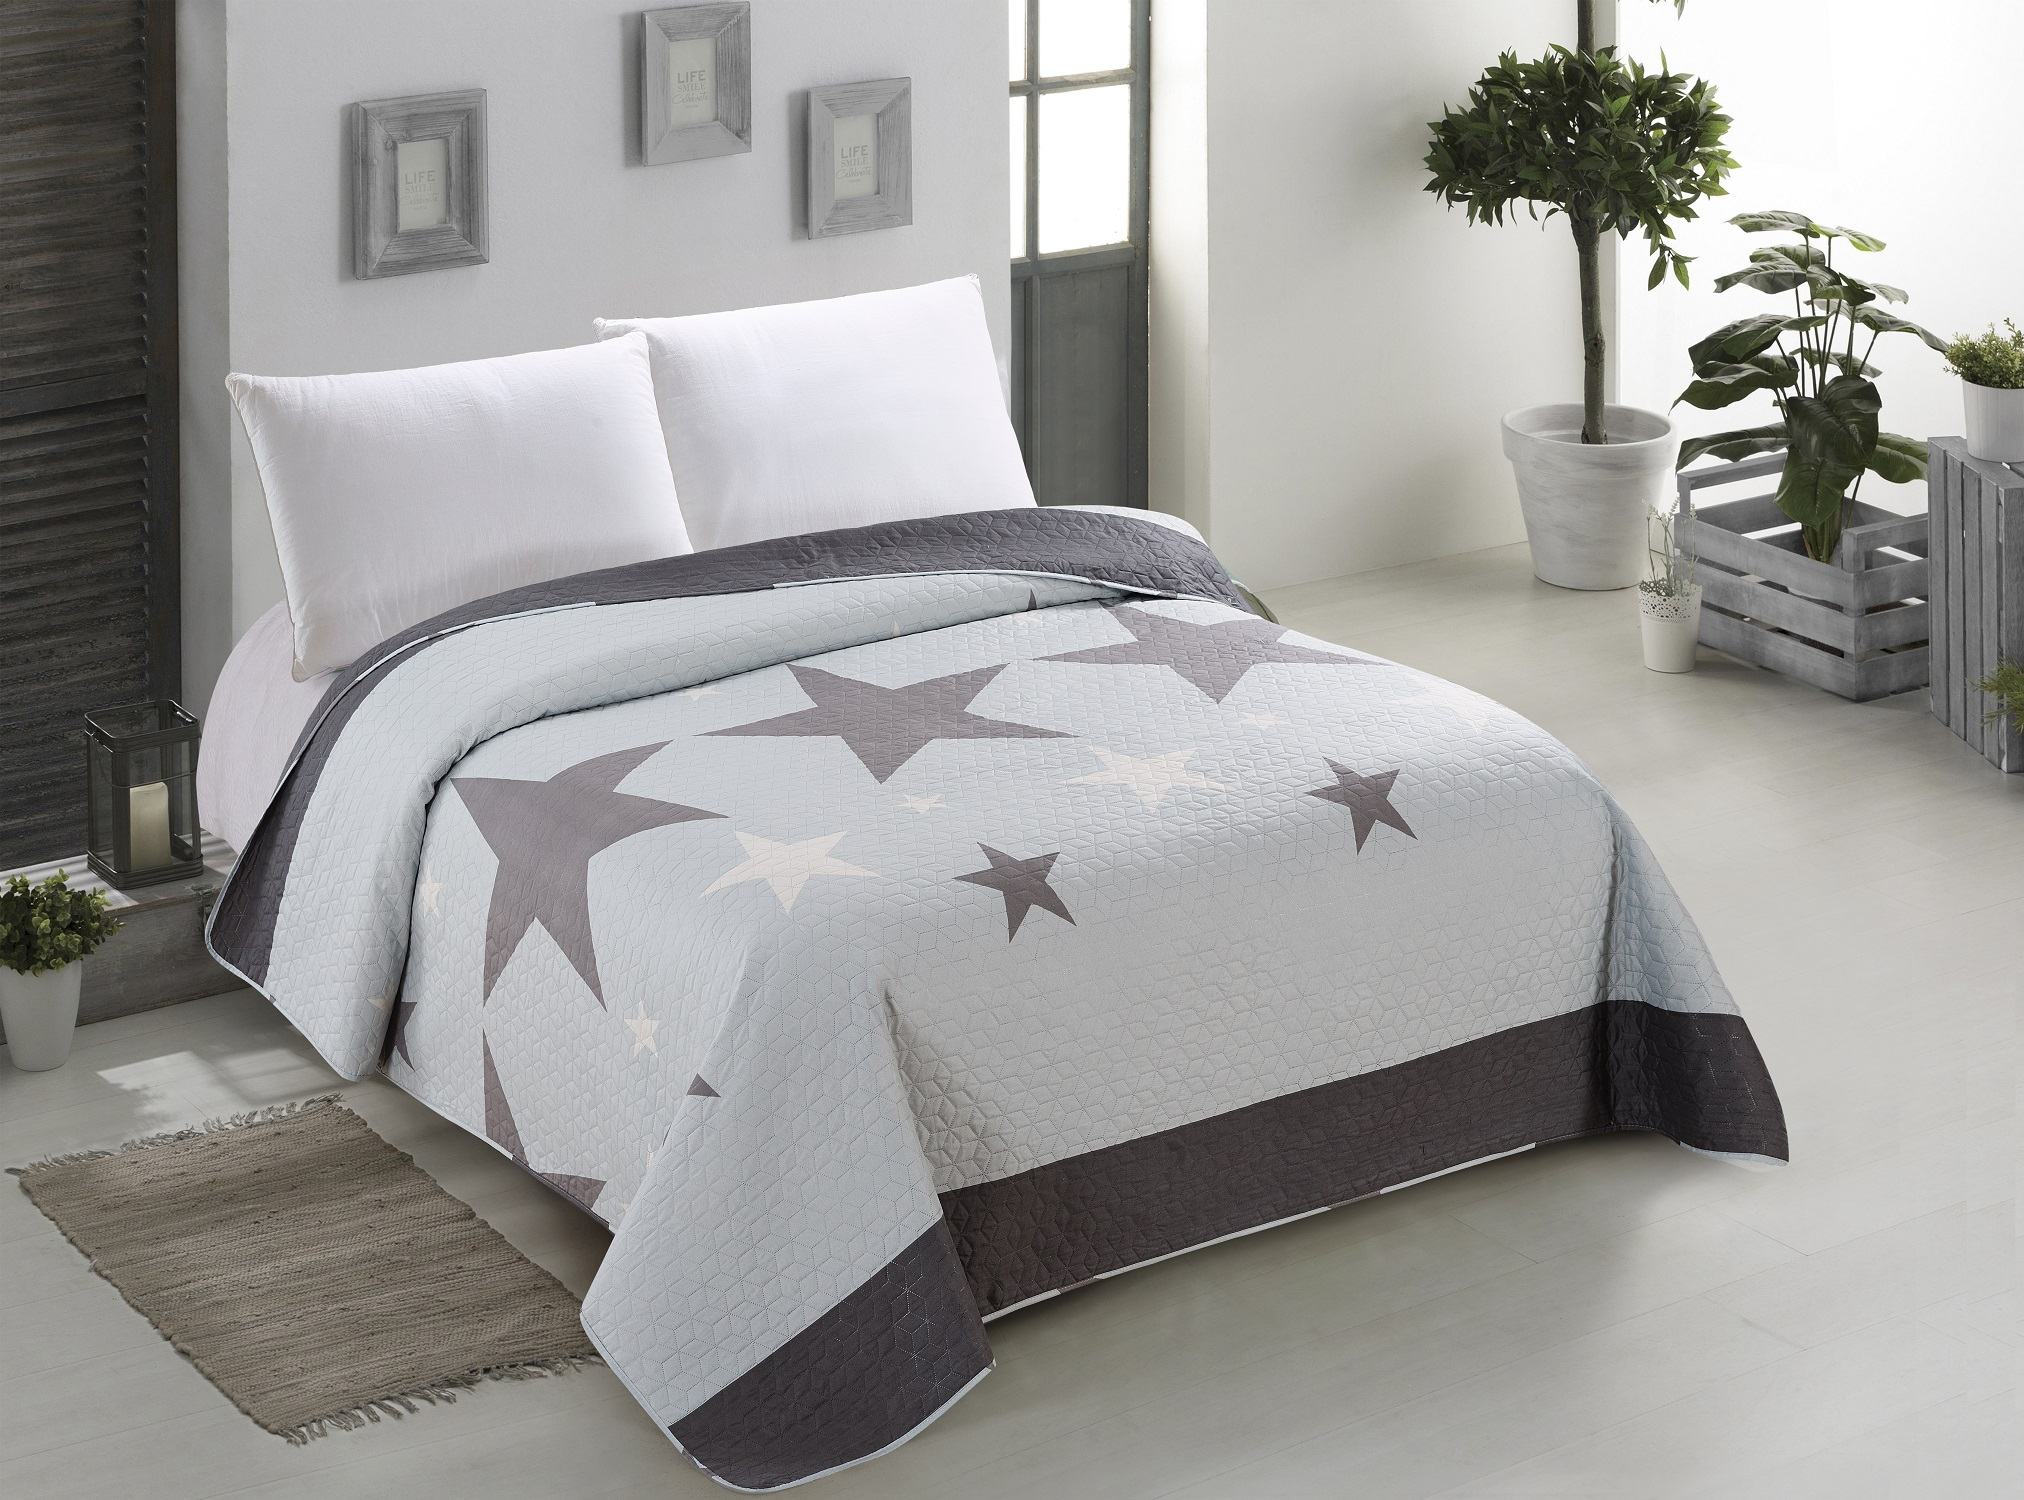 Cuvertura reversibila din microfibra Stardark Light Grey / Dark Grey